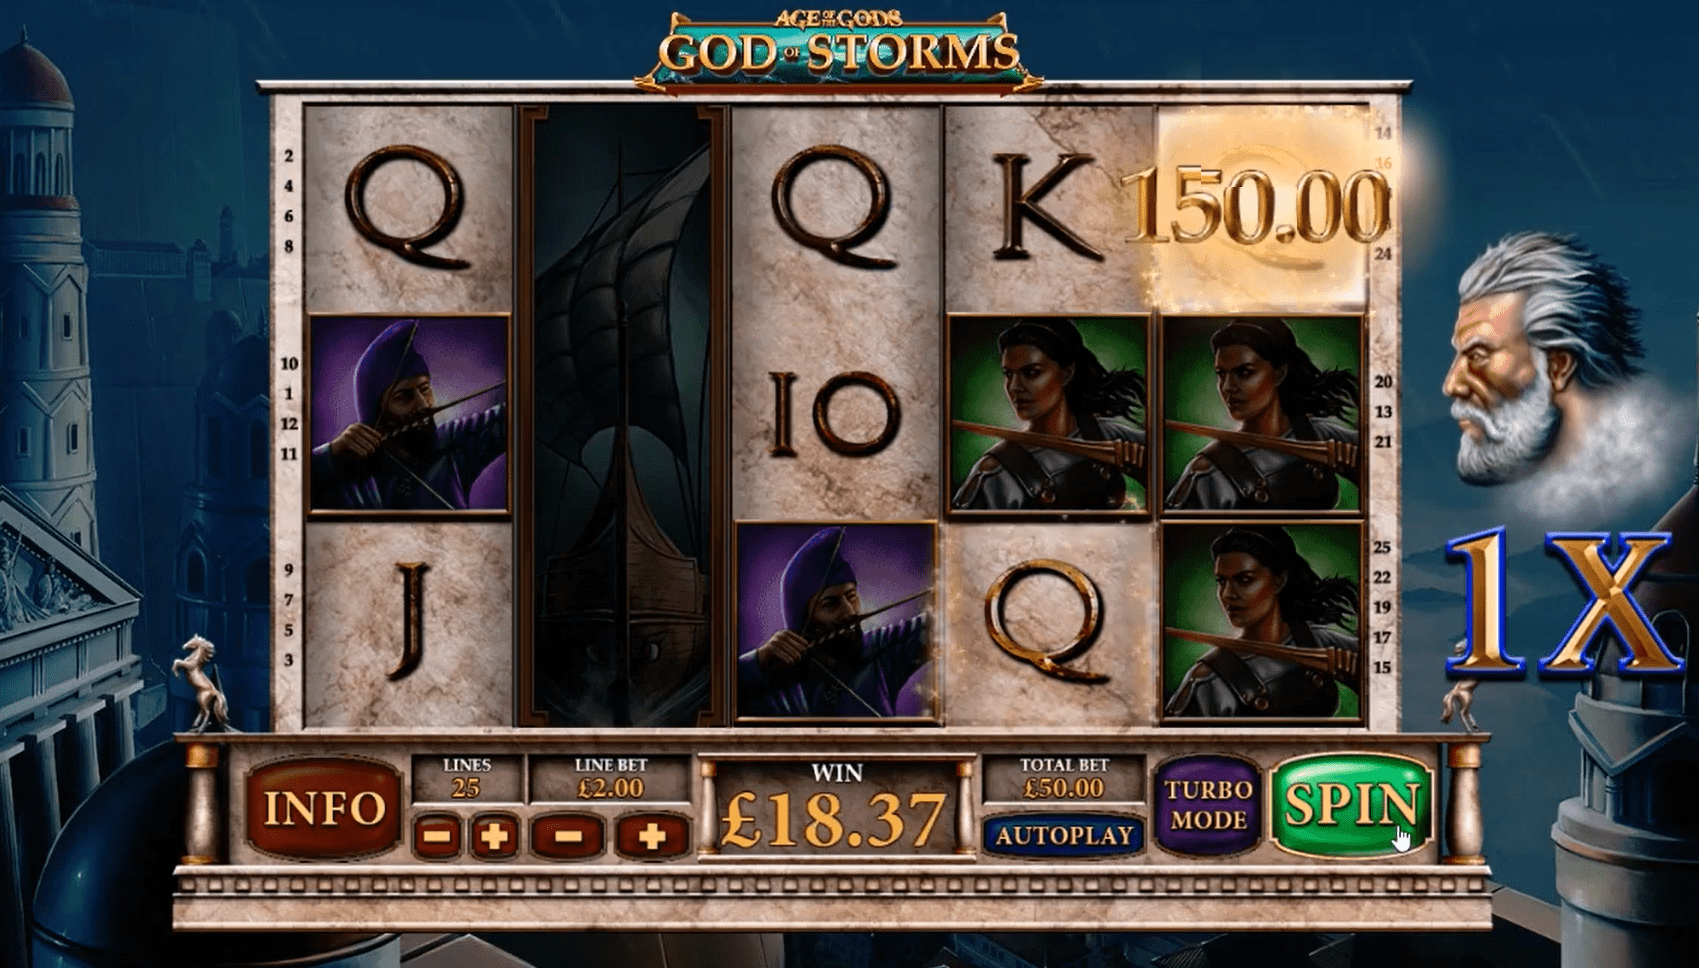 Age of the Gods Gods of Storm Slots Paylines